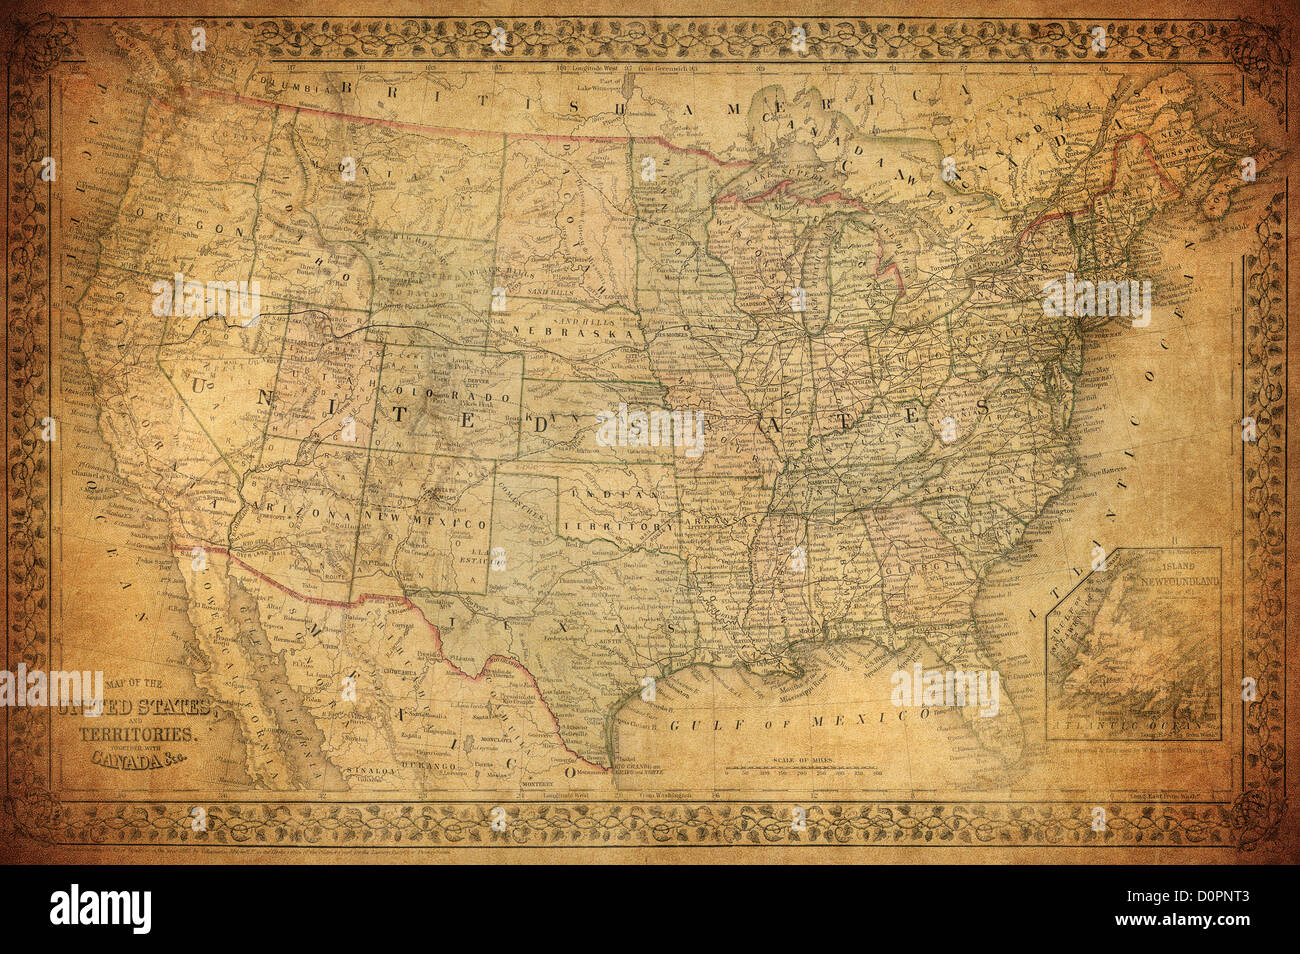 Vintage Usa Map Stockfotos & Vintage Usa Map Bilder - Alamy